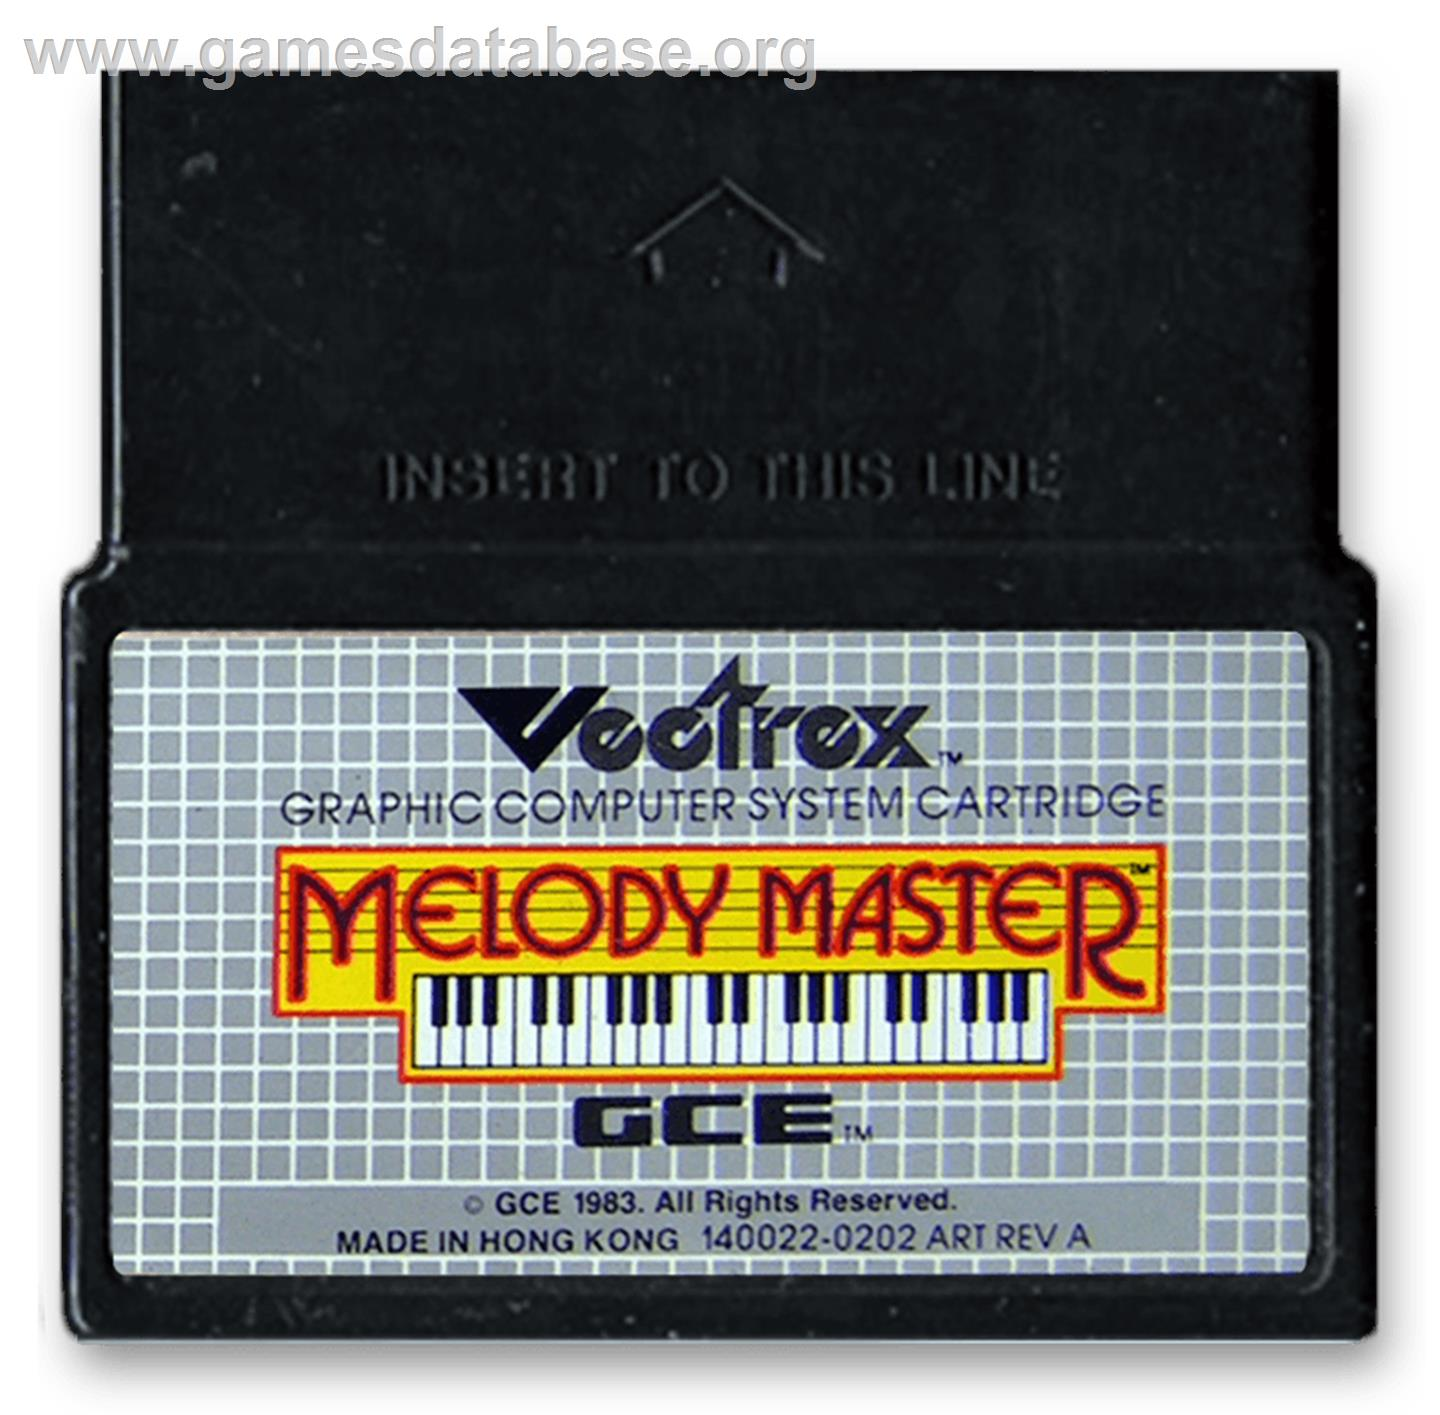 Melody Master: Music Composition and Entertainment - GCE Vectrex - Artwork - Cartridge